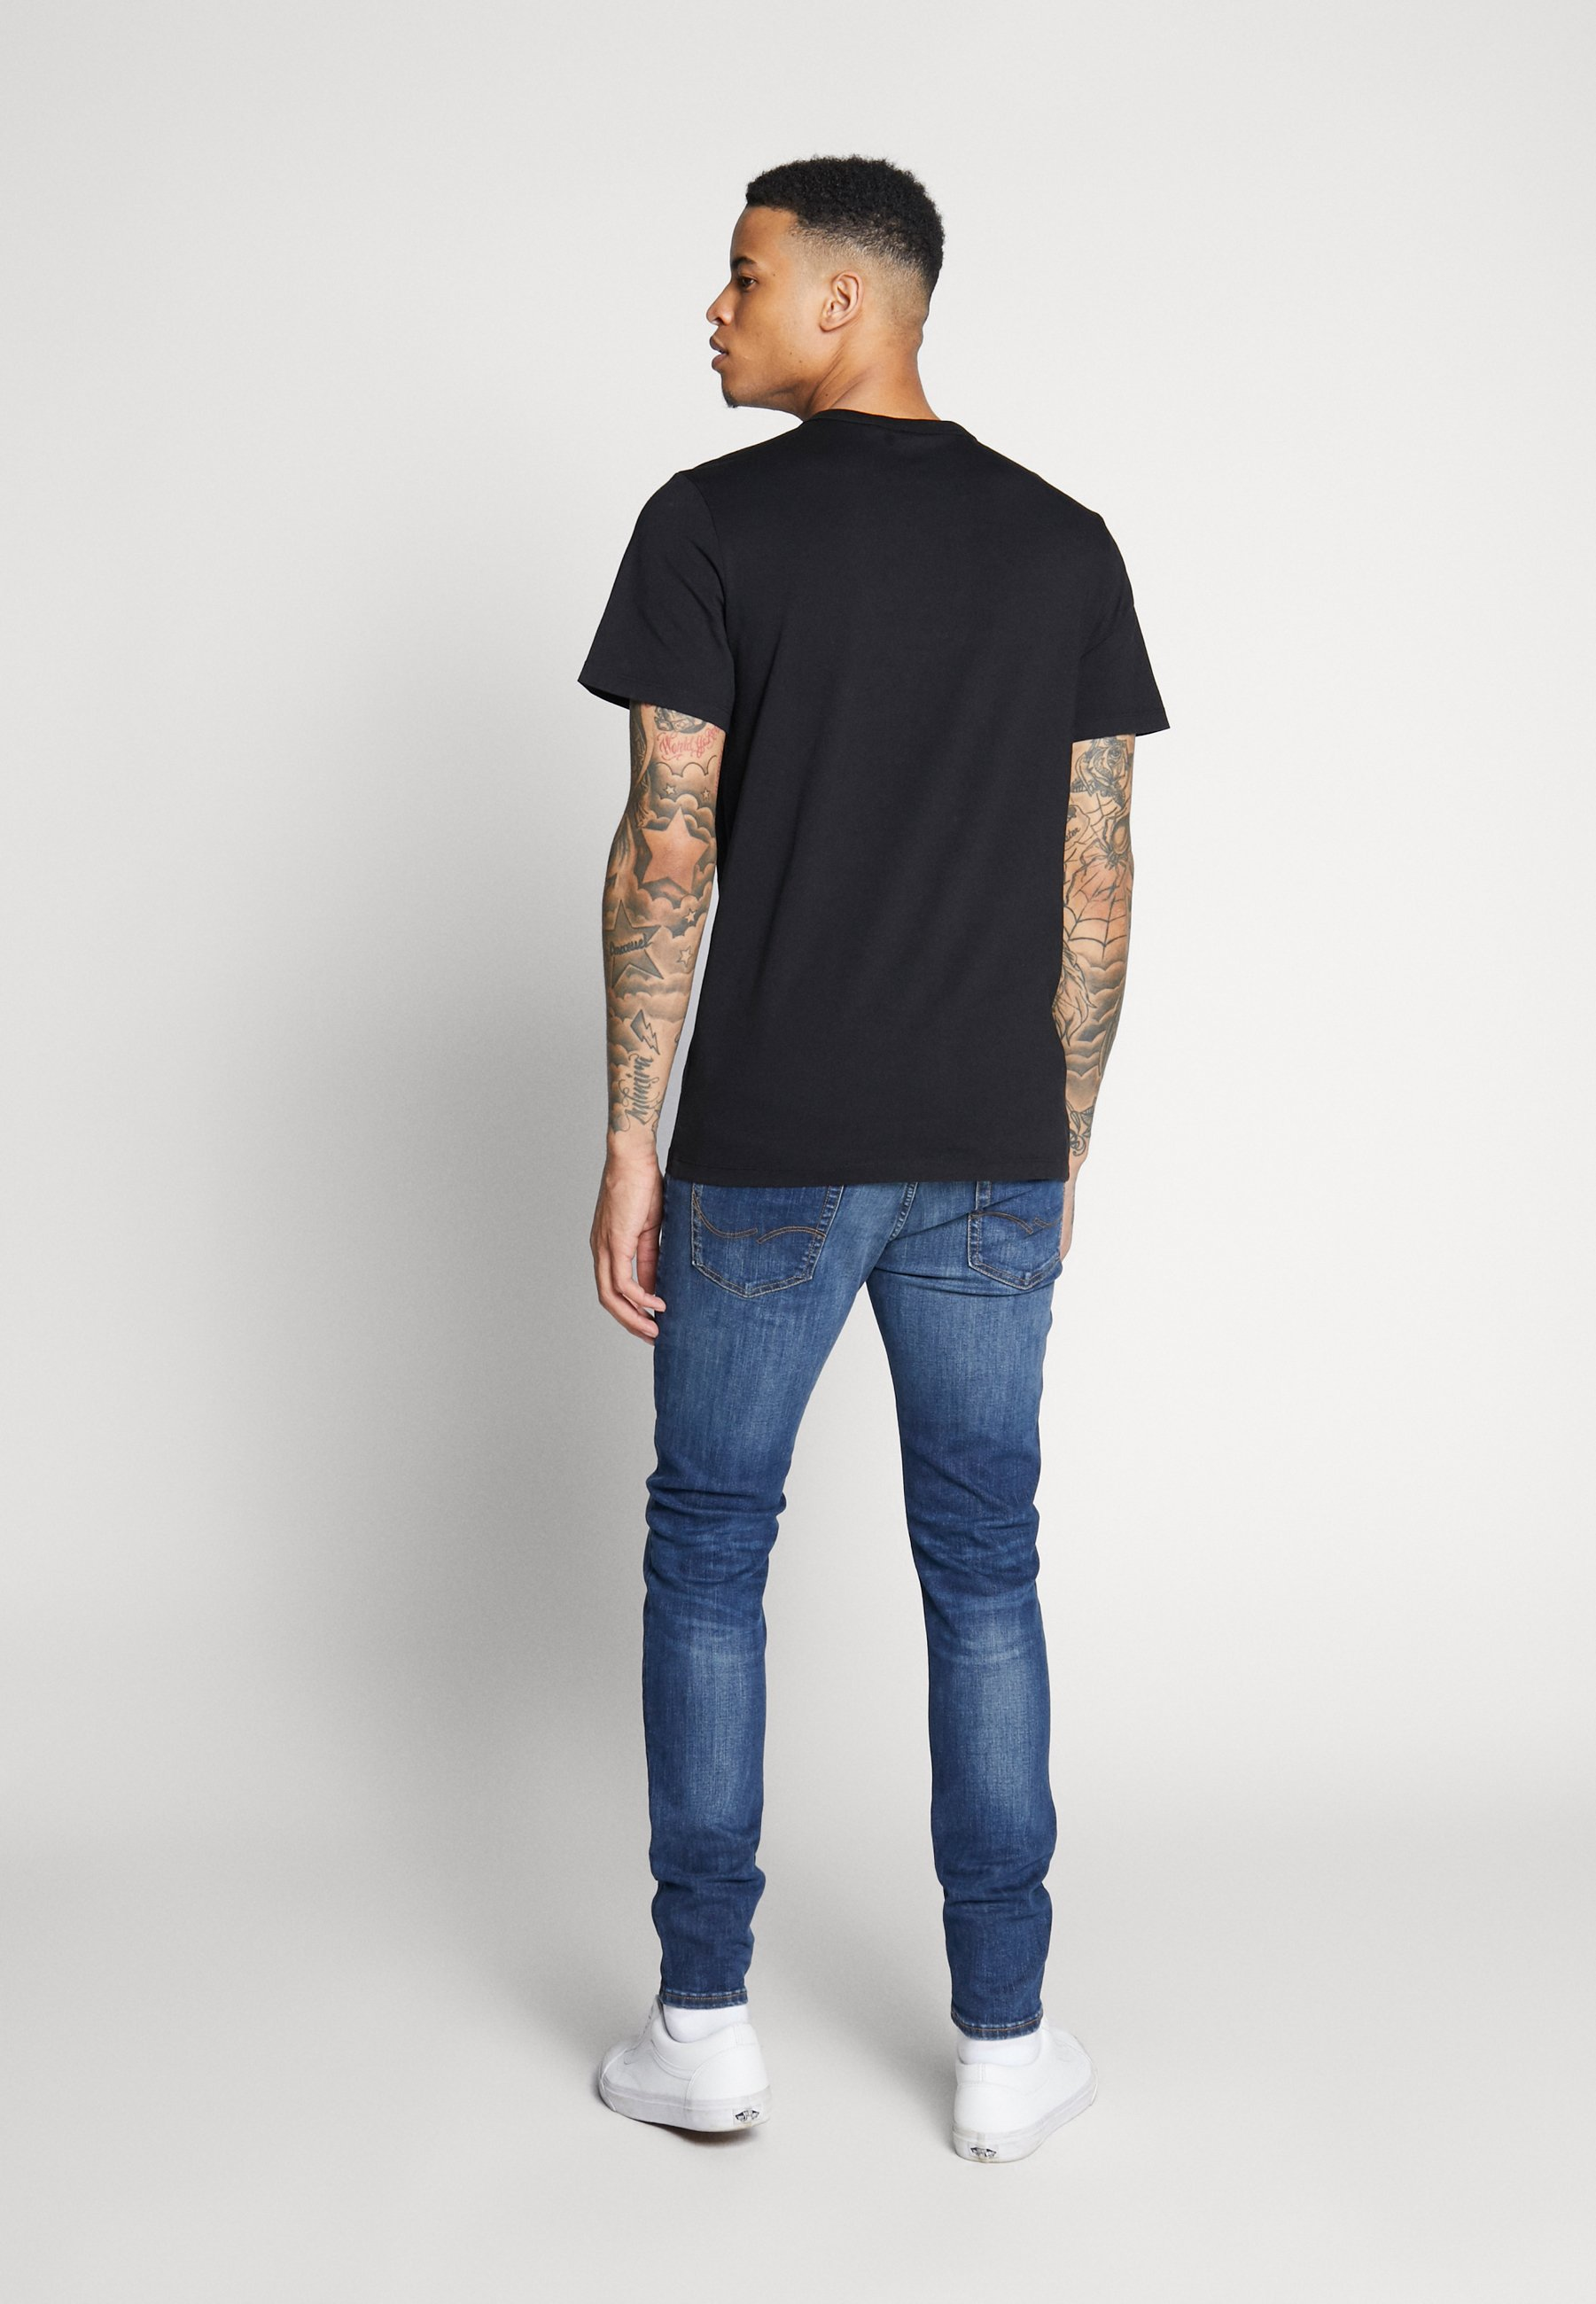 G-star Gsraw Ao Pocket R T Ss - T-shirt Imprimé Dark Black